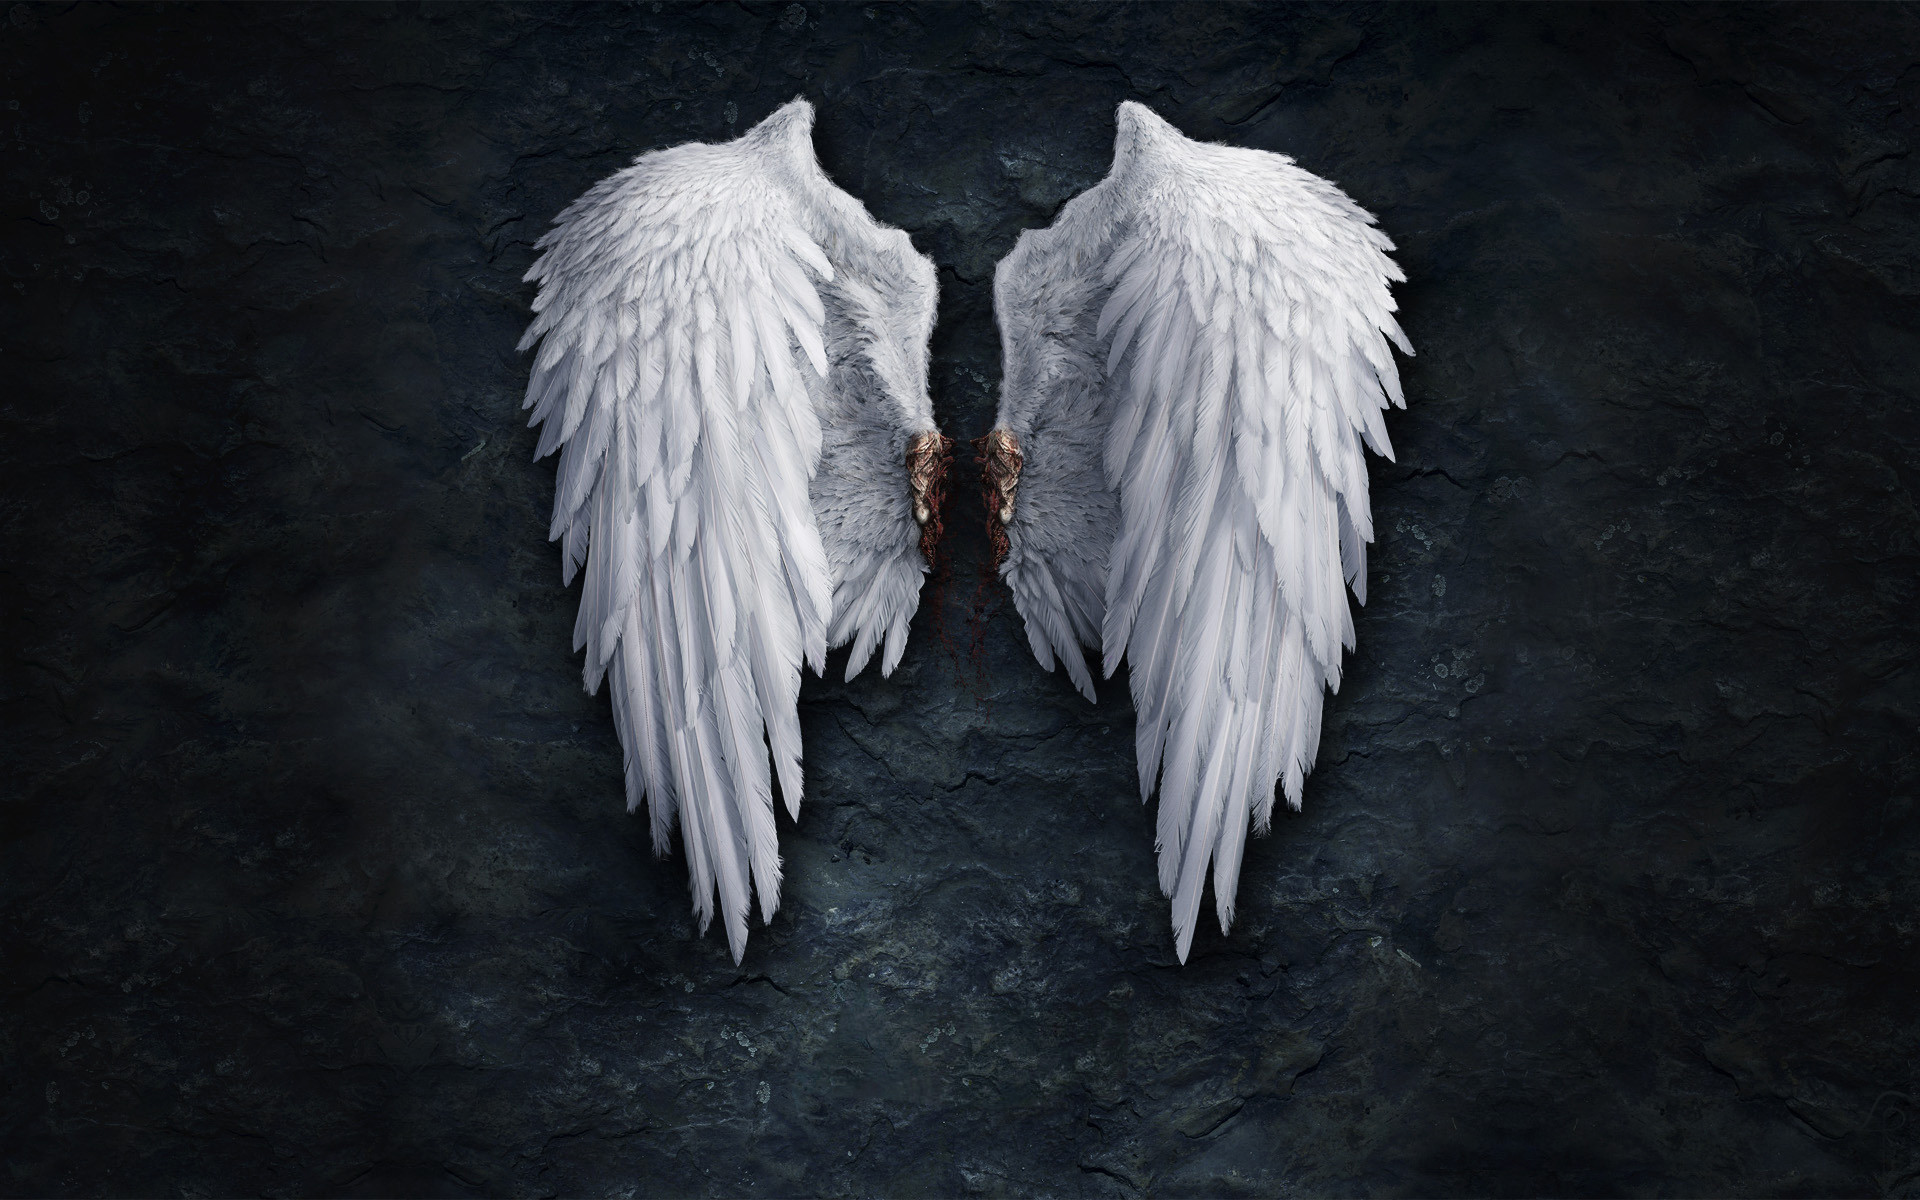 Wallpaper Angel Wings 81 images 1920x1200